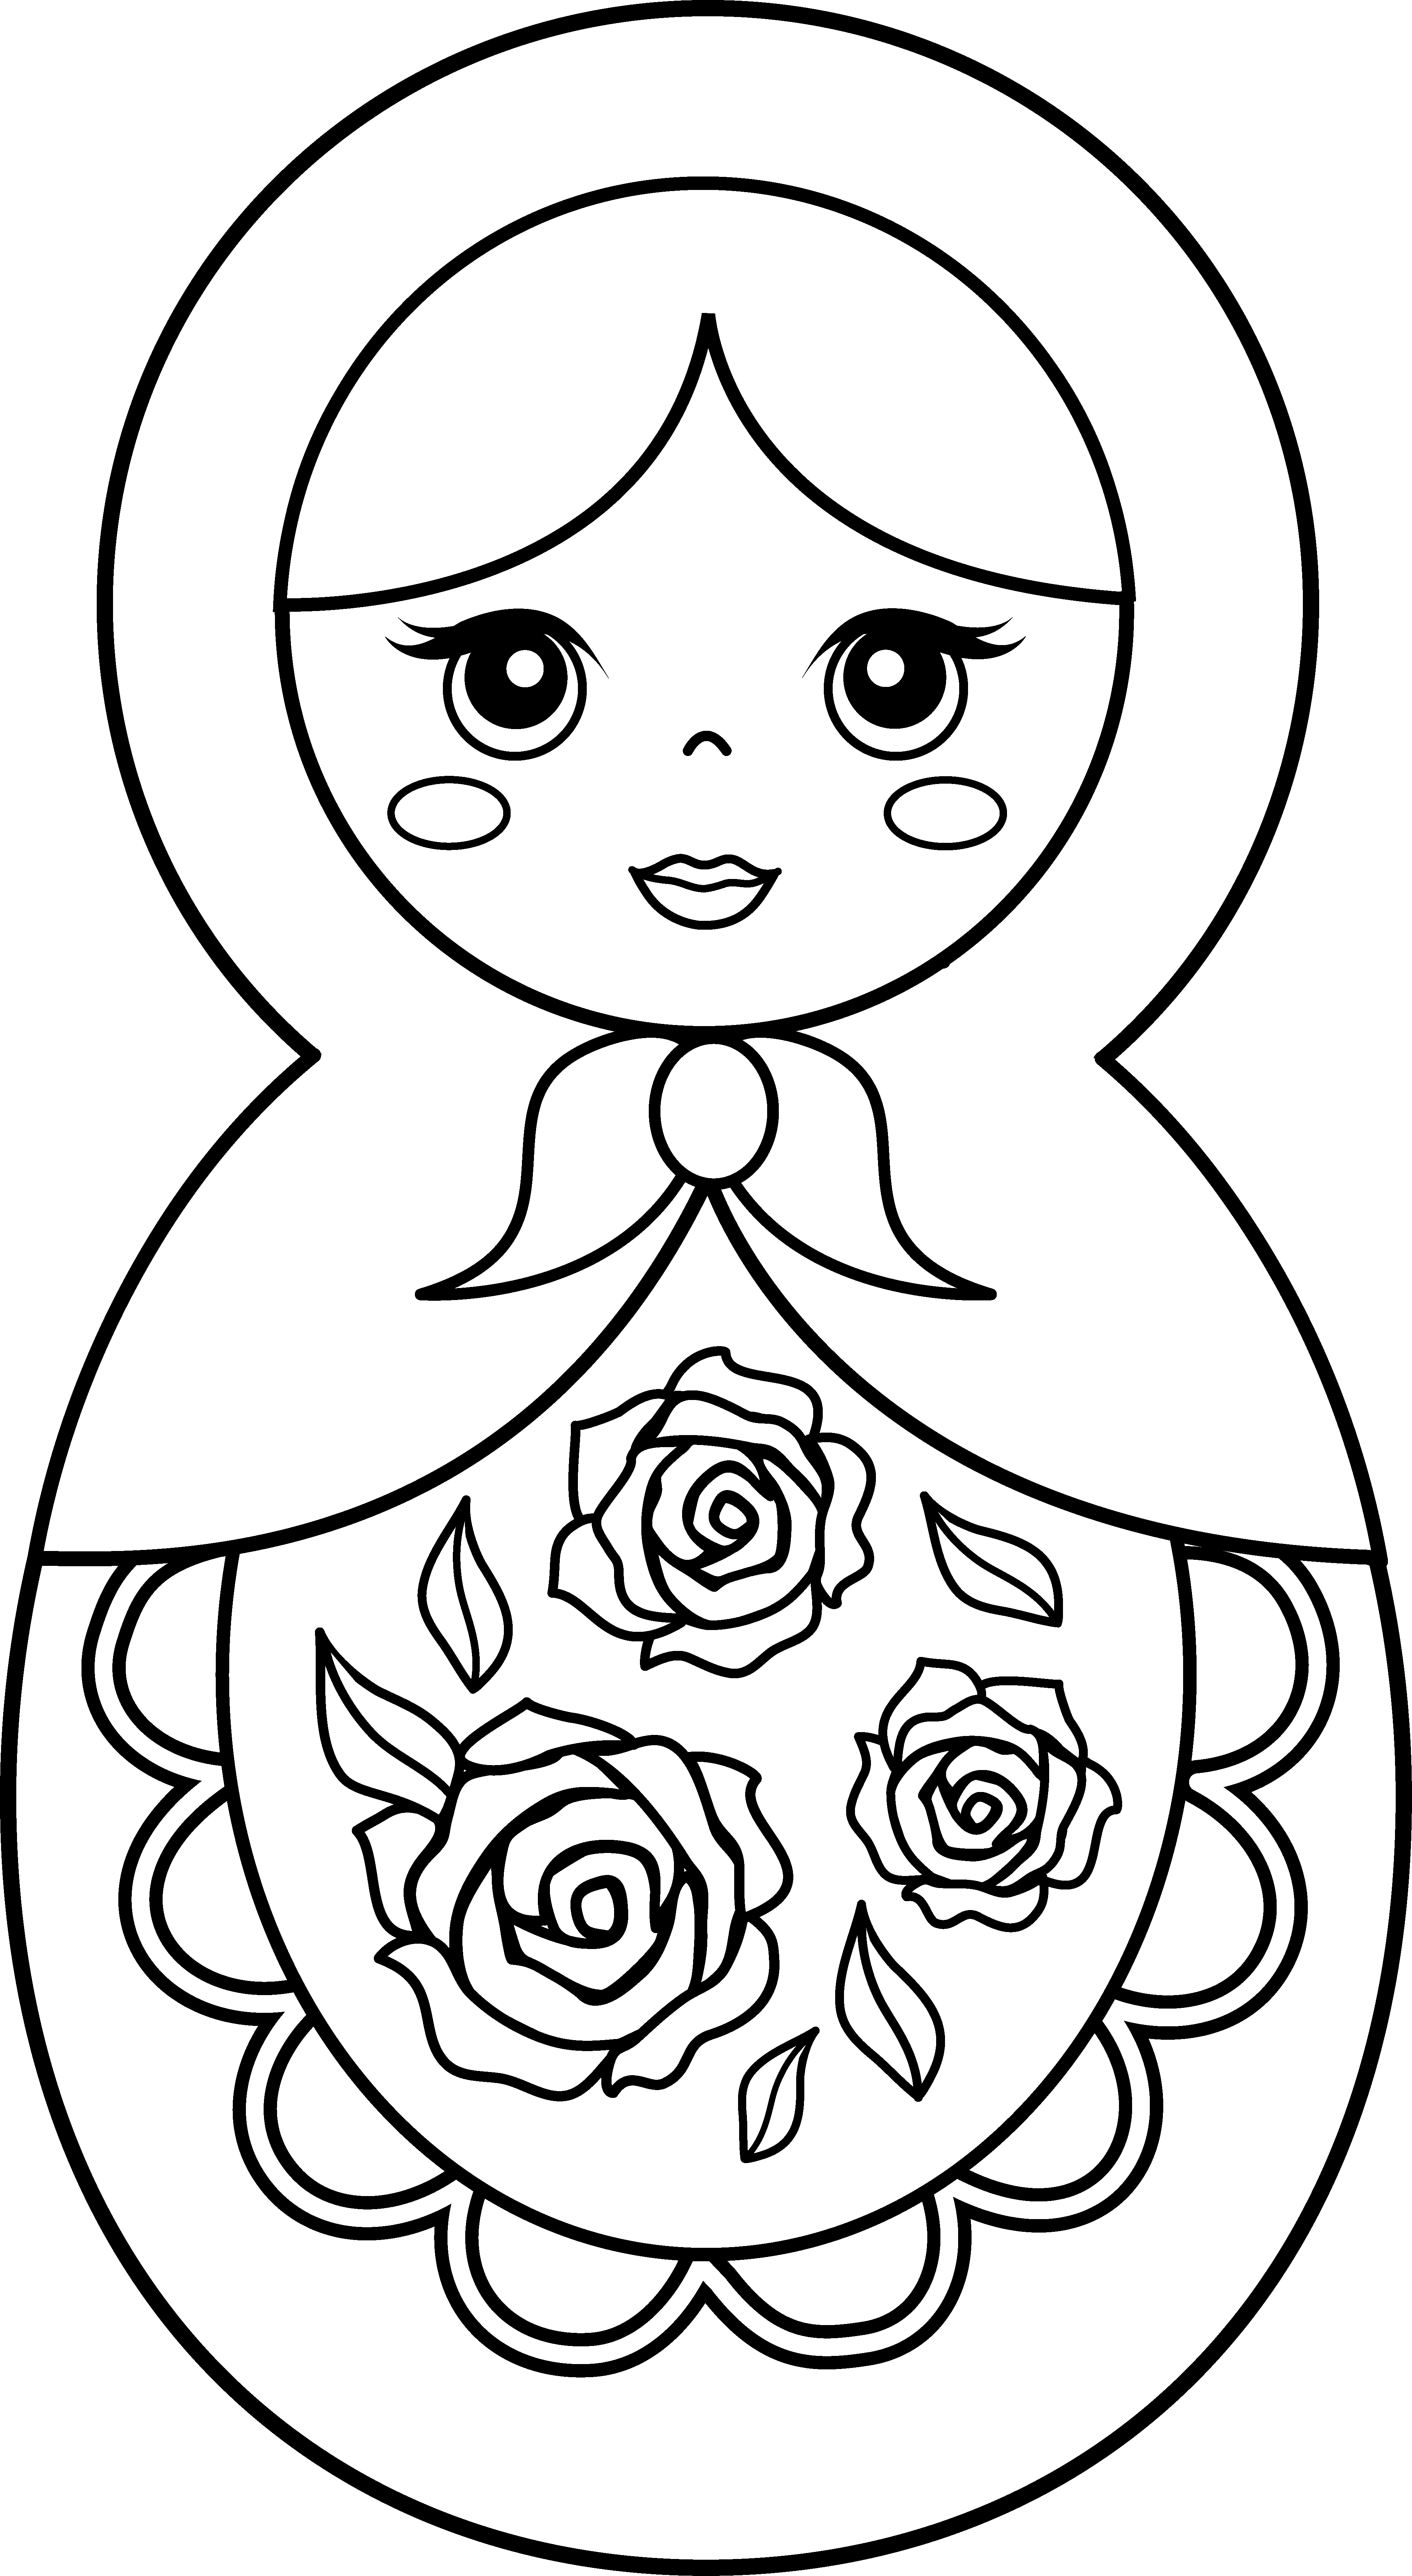 Clipart coloring book dog chew toys royalty free download Matryoshka doll Coloring book Paper doll Toy - Russian Doll Cliparts ... royalty free download